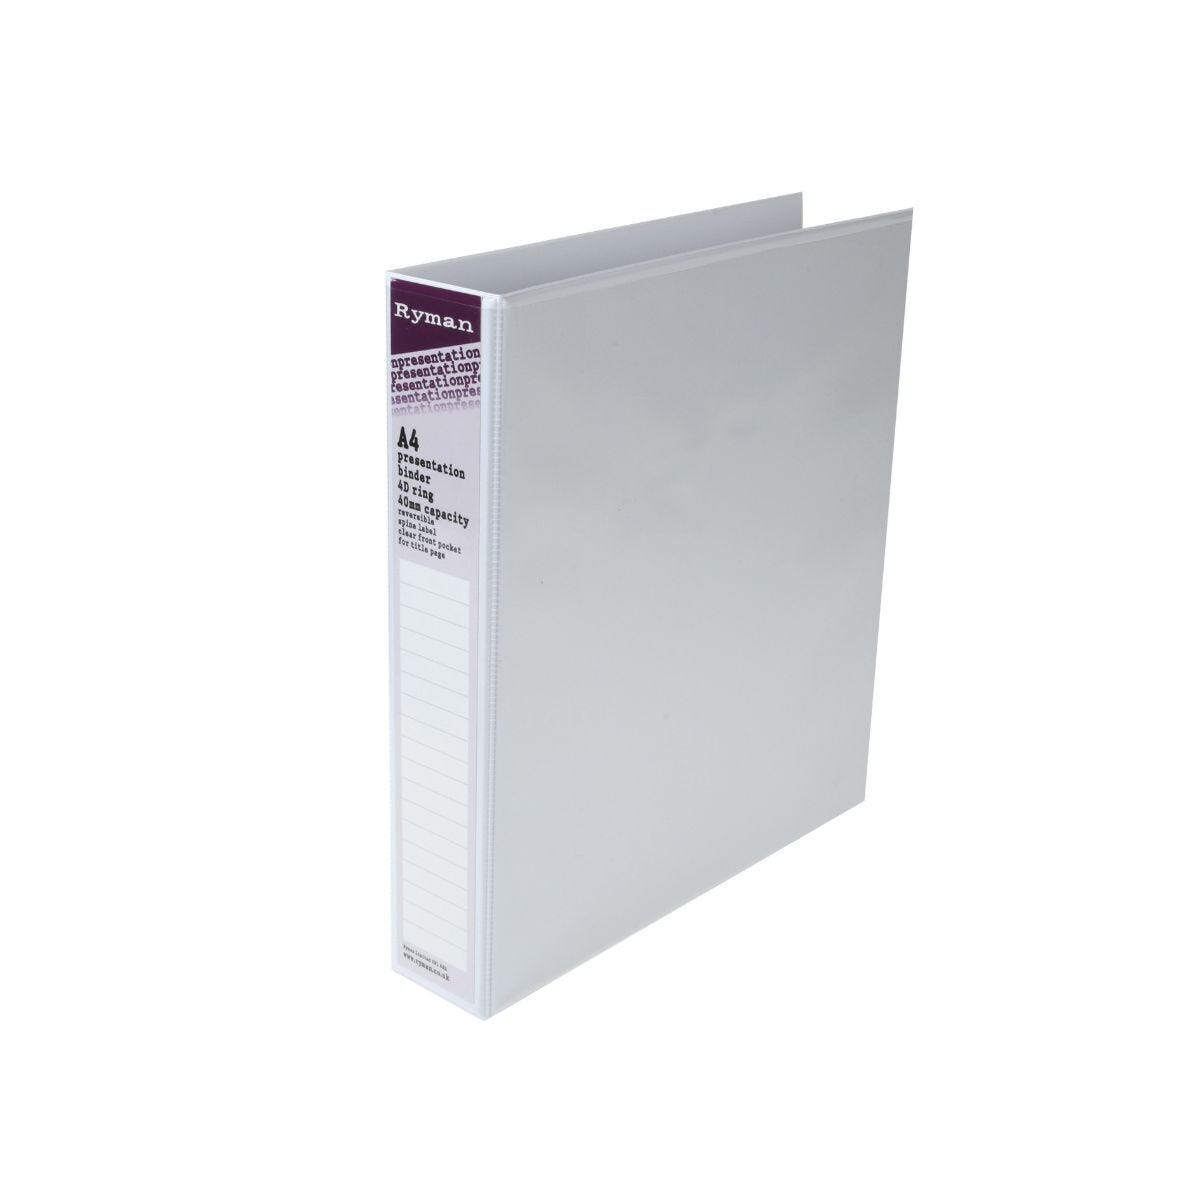 Ryman Presentation Ring Binder A4 4D Ring 40mm White